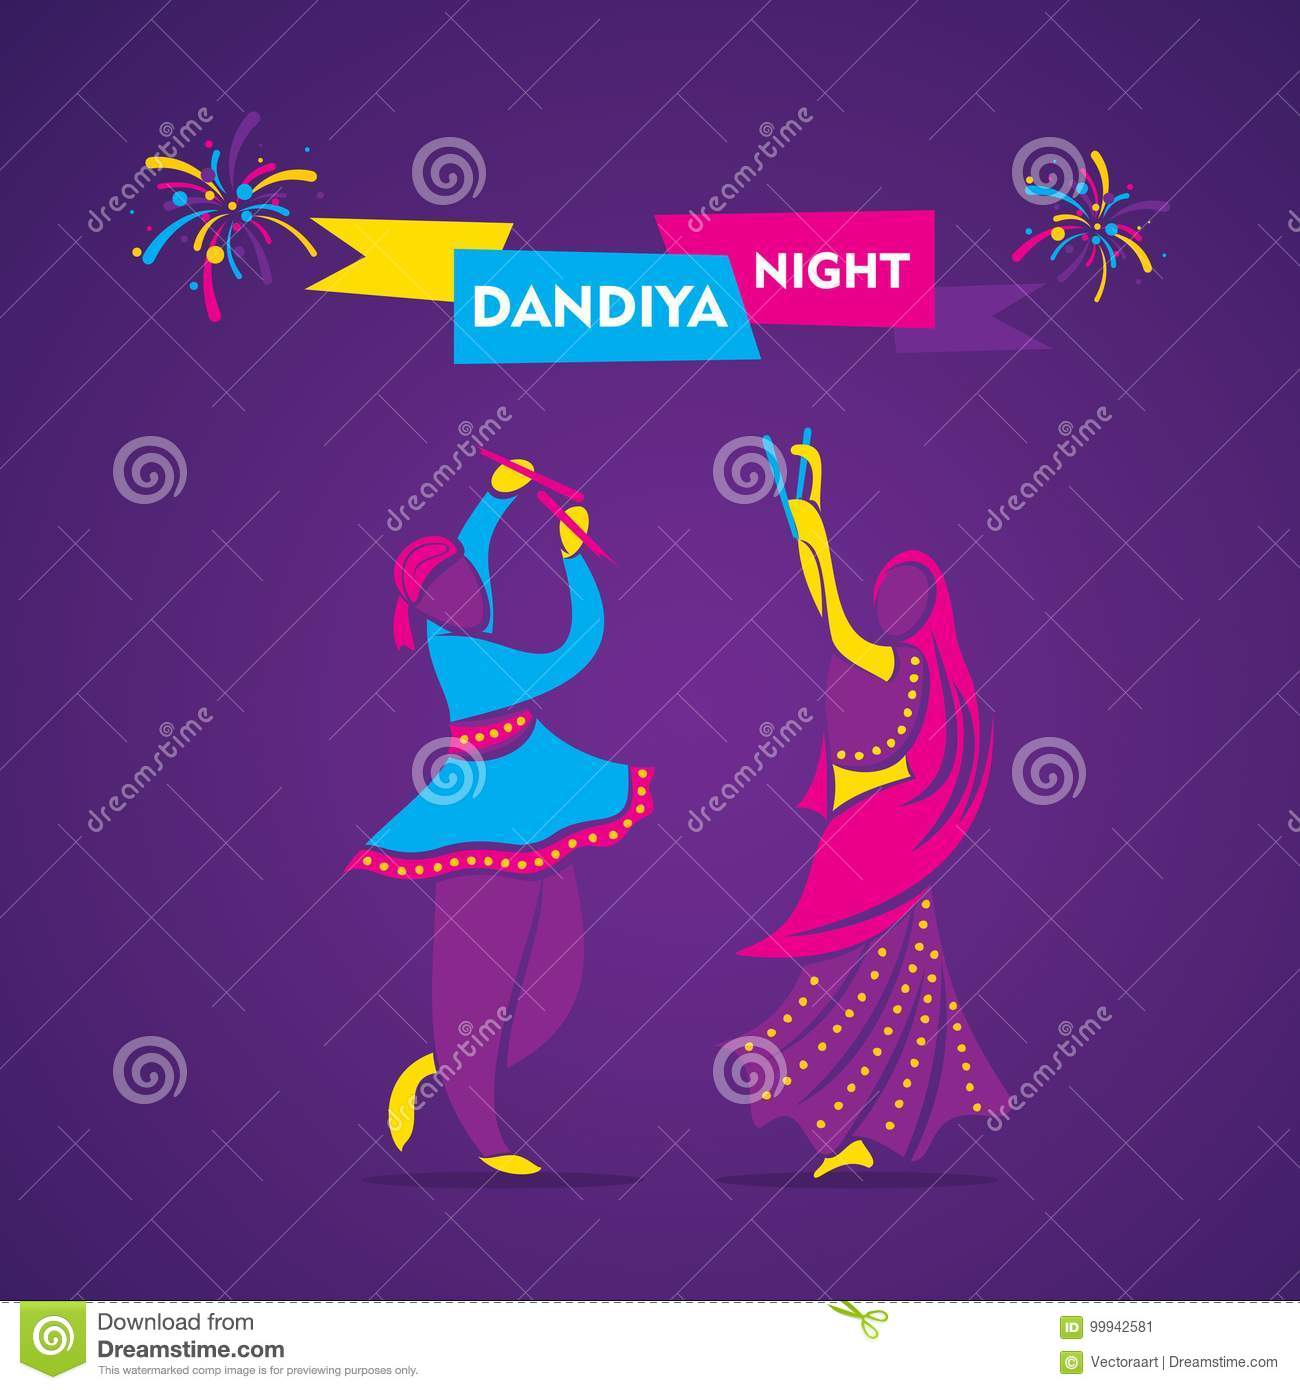 Dandiya Night Poster Design Stock Vector Illustration Of Design Abstract 99942581